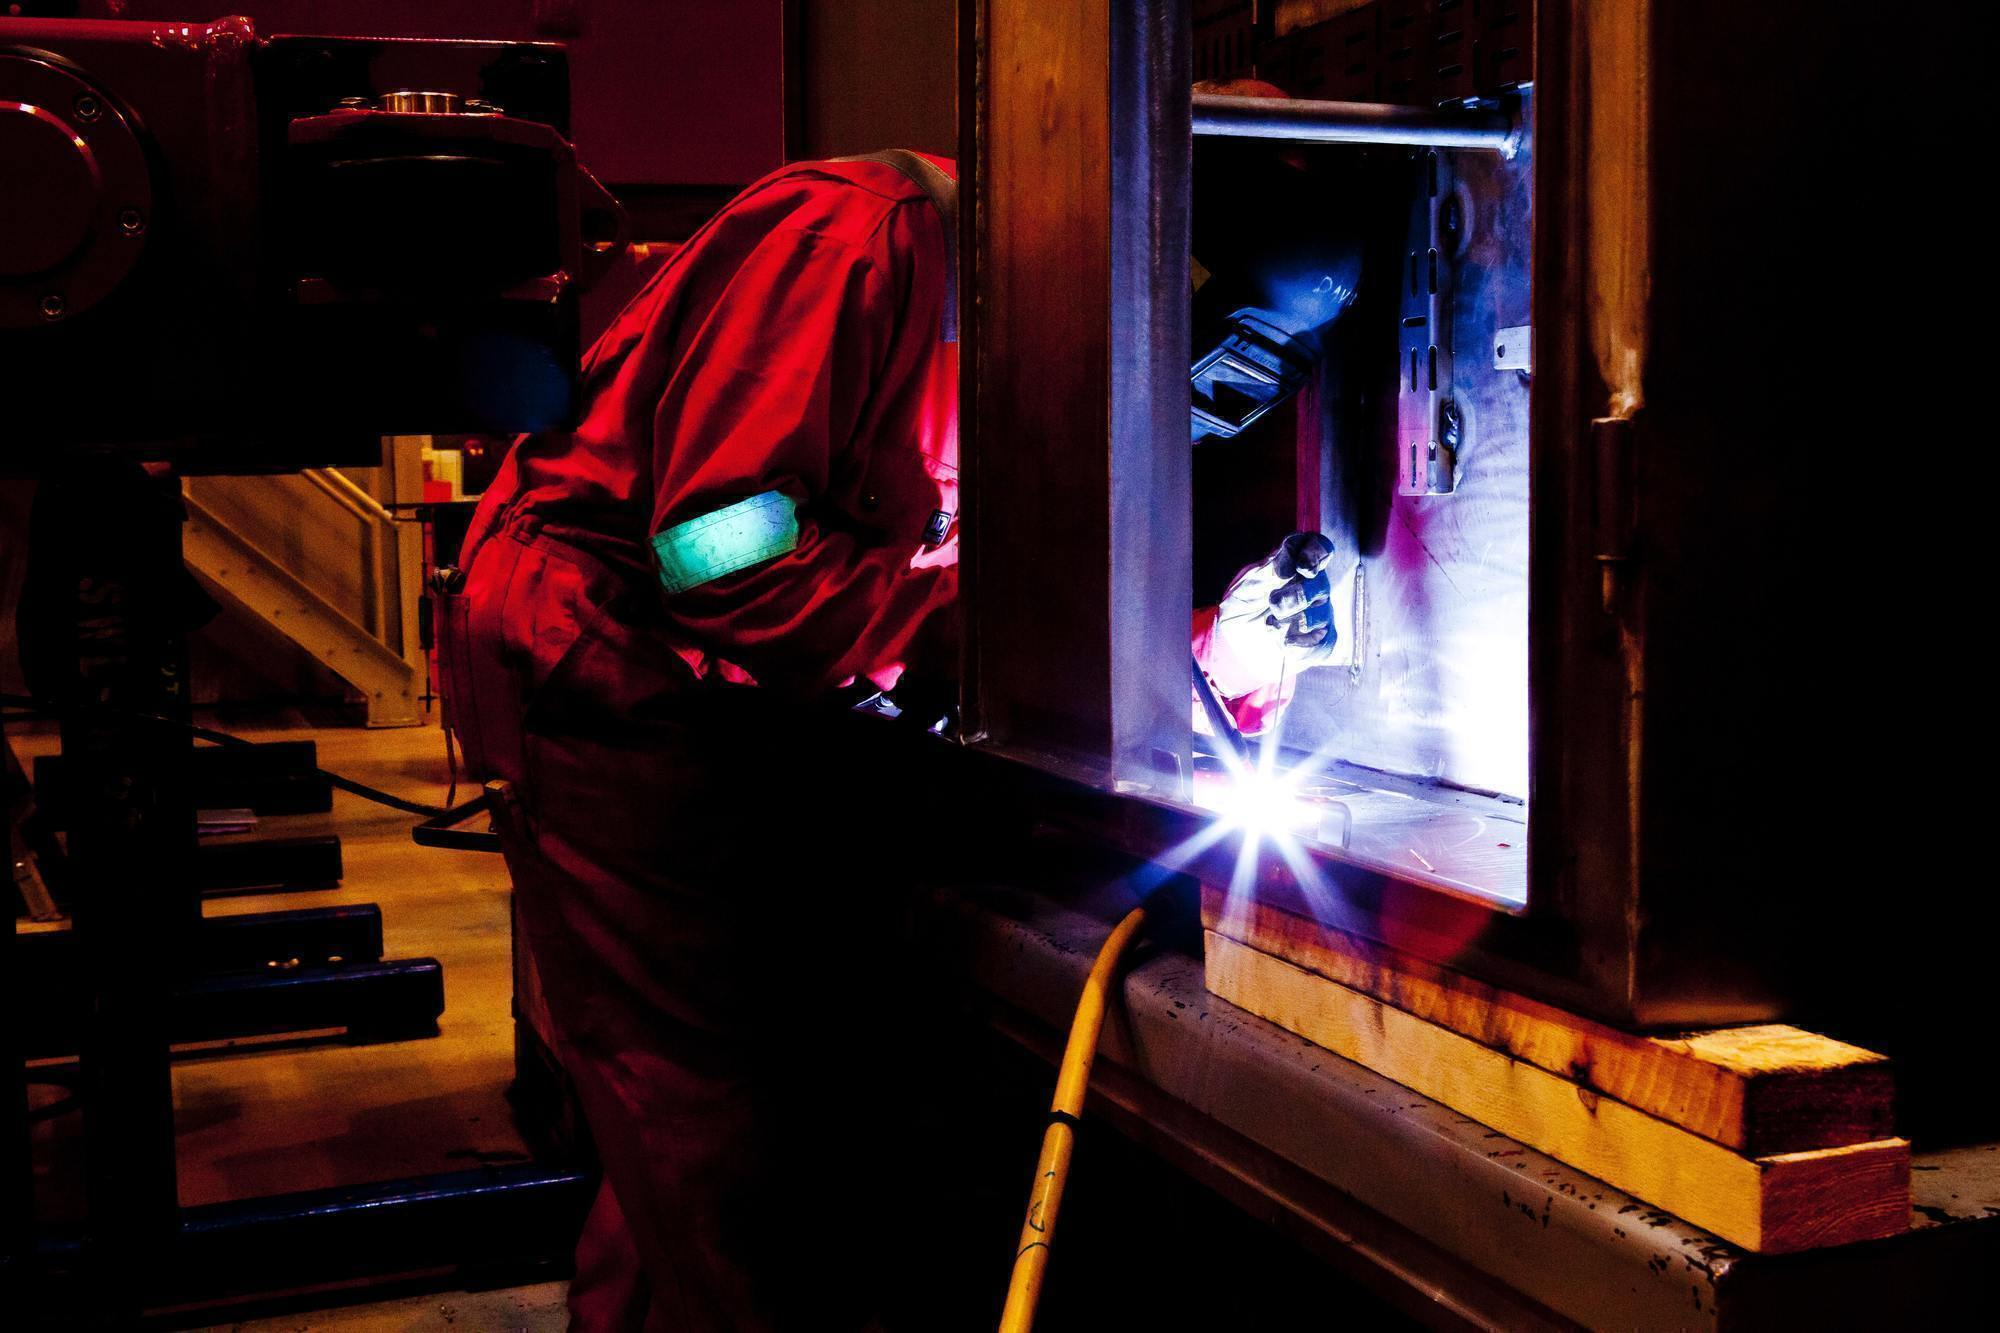 Hot Jobs for Veterans - Welder